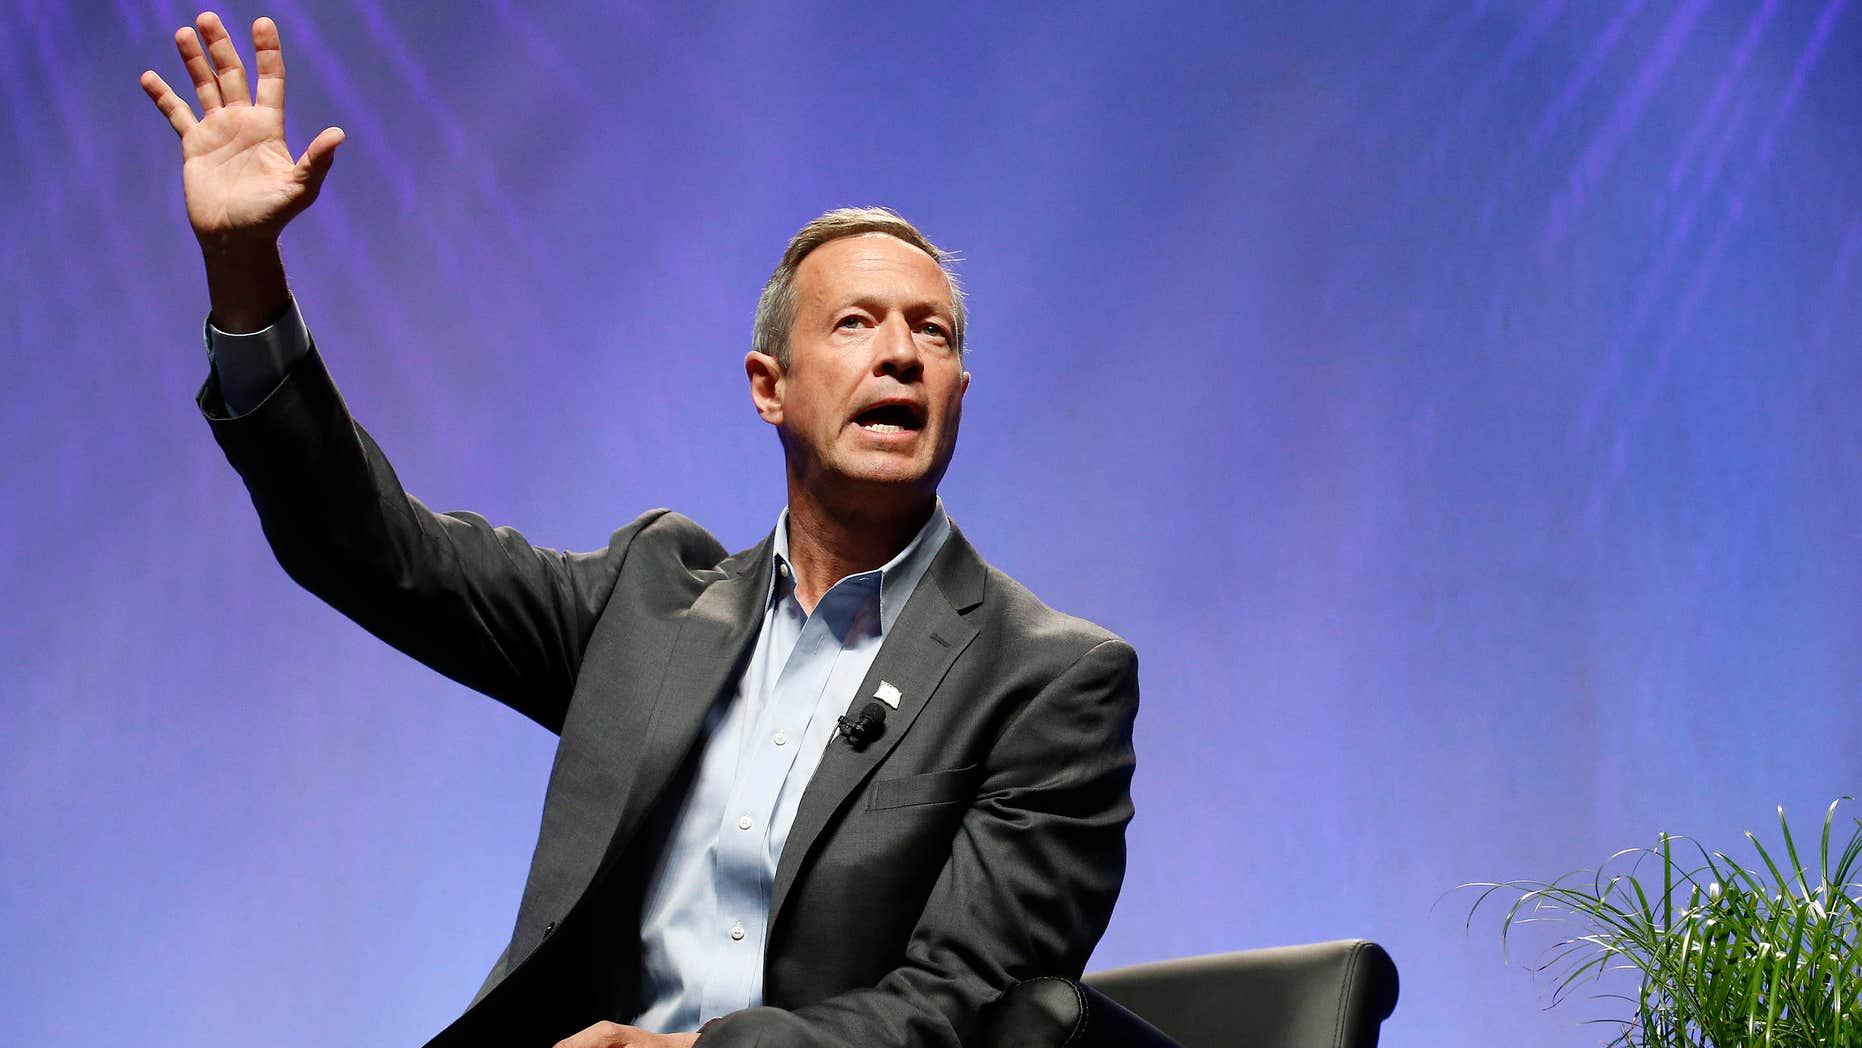 July 18, 2015: Democratic presidential candidate, former Maryland Gov. Martin O'Malley, speaks at a Netroots Nation town hall meeting.